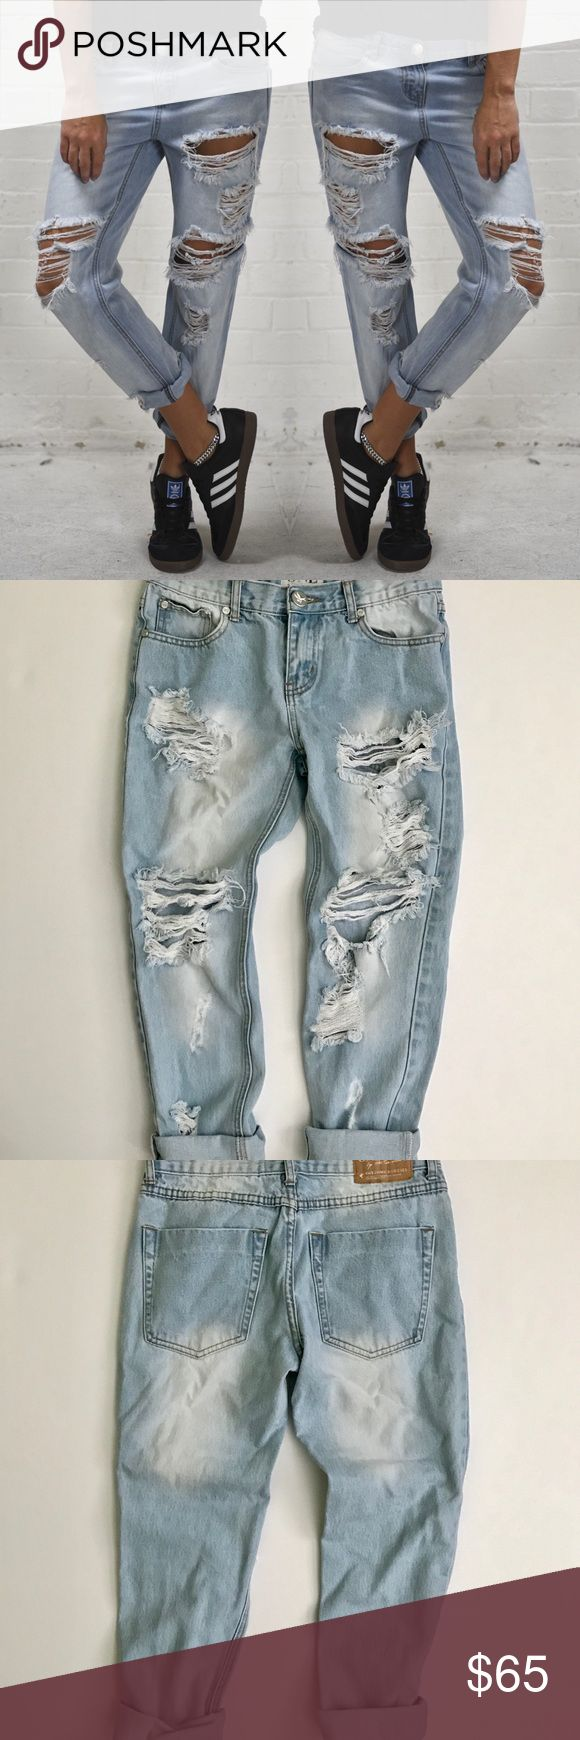 One Teaspoon Wilde Awesome Baggies 24 One Teaspoon Awesome Baggies  Boyfriend jeans   - Size 24 - Color : Wilde   - great condition    Gypsy Warrior , dolls kill , Nasty Gal , Asos , Pacsun , Urban Outfitters , Forever 21 , Free People , LF , shop bop , revolve clothing , Nordstrom , one teaspoon , planet blue , vintage , unif , karmaloop , grunge  , boho , bohemian , anthropologie , Zara , miss guided , boohoo , denim , jeans , distressed jeans , boyfriend jeans , Levi's  (stores for views)…